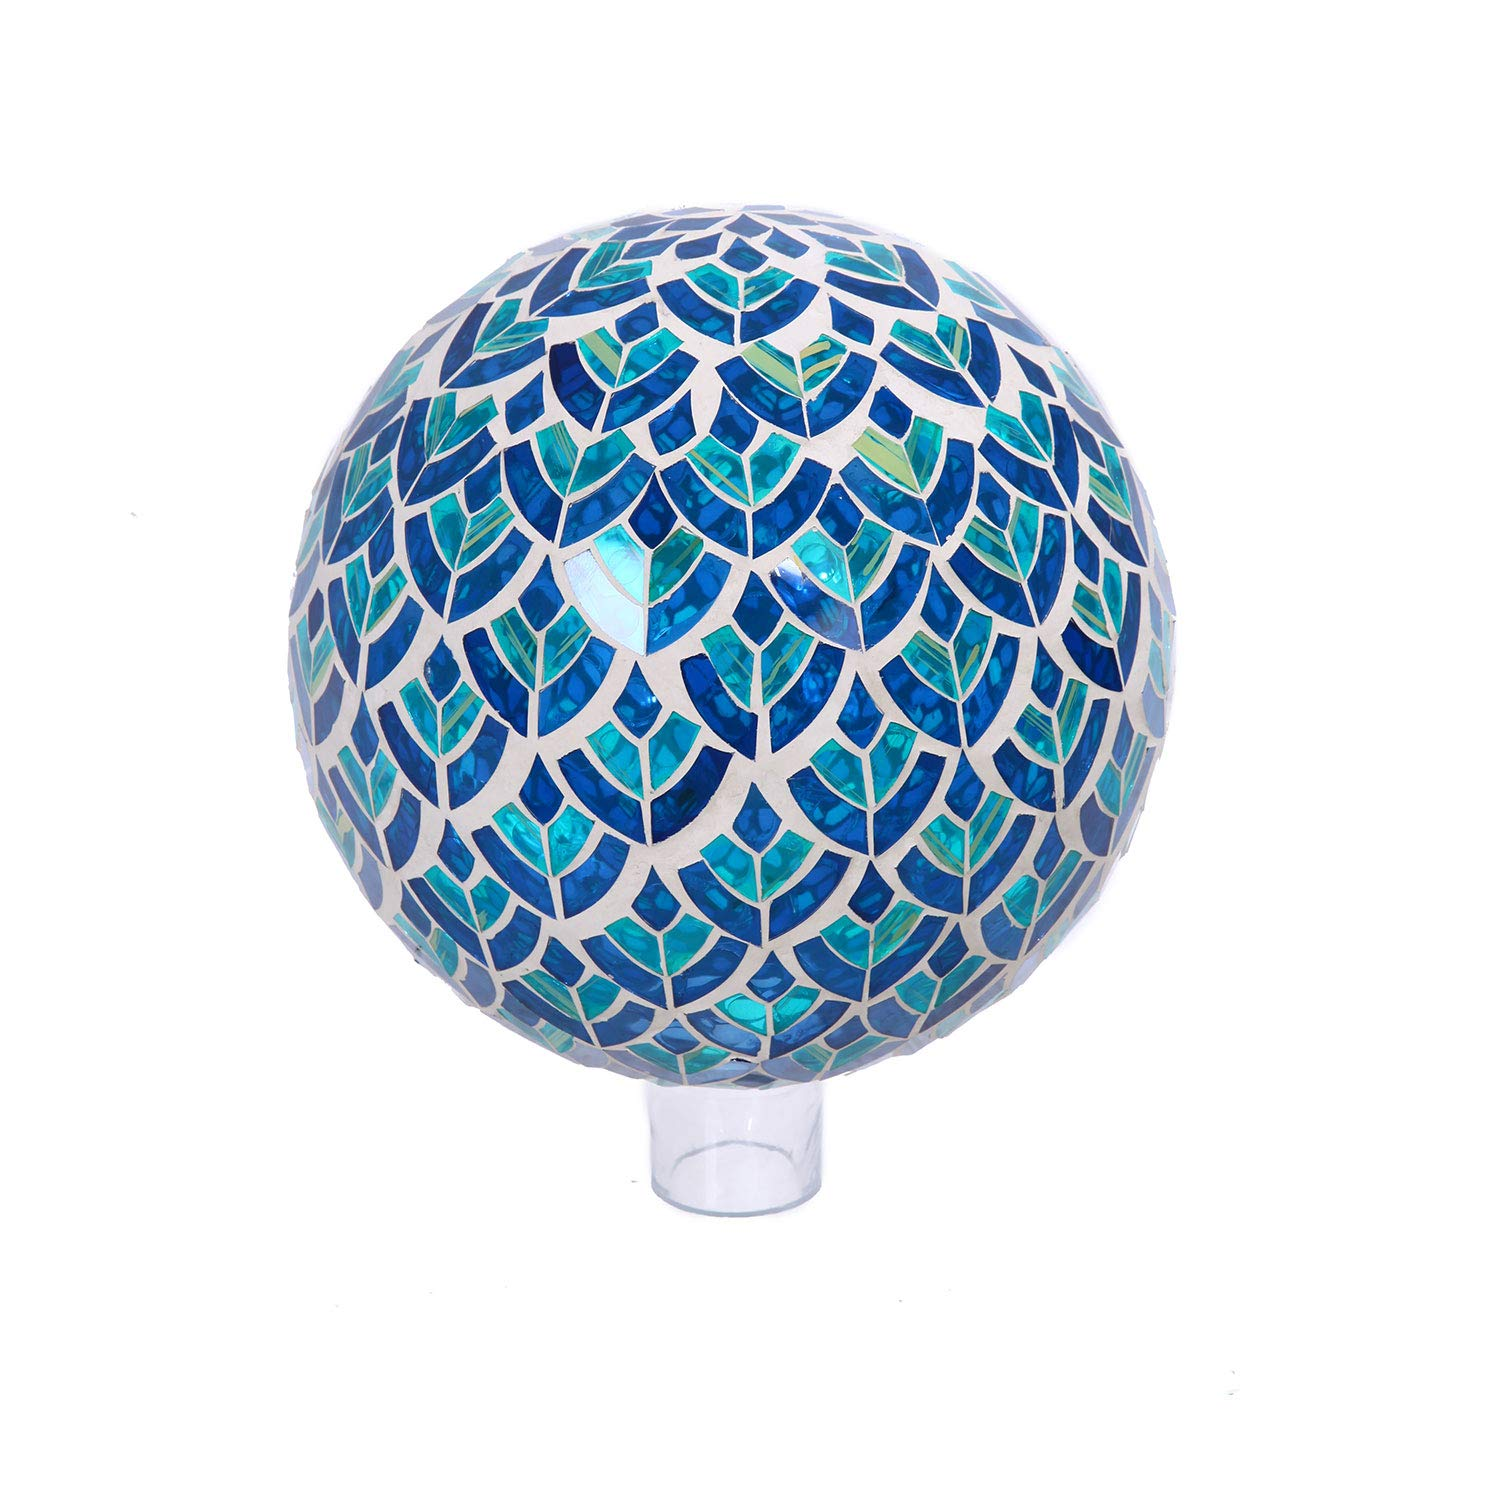 Goose Creek Colorful Mosaic Glass Gazing Ball 10'',Blue